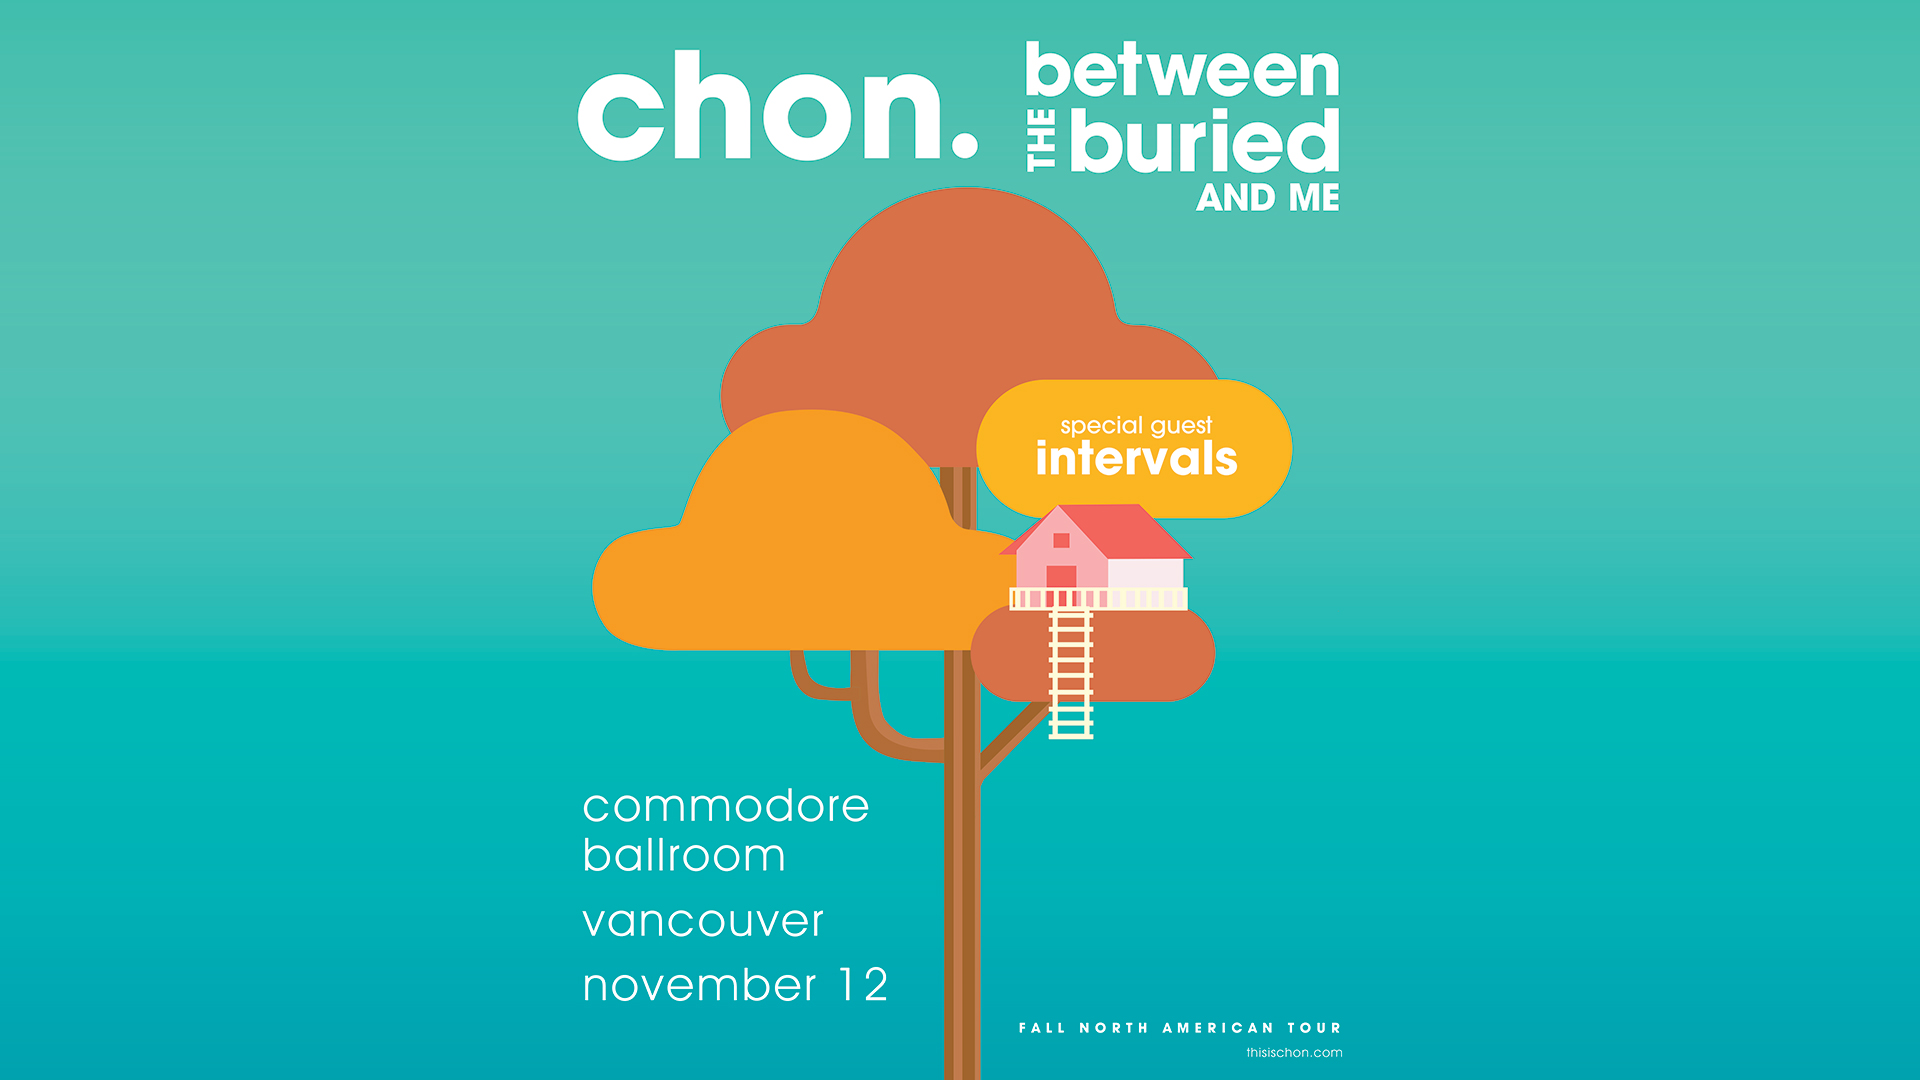 Chon Between The Buried And Me The Commodore Ballroom